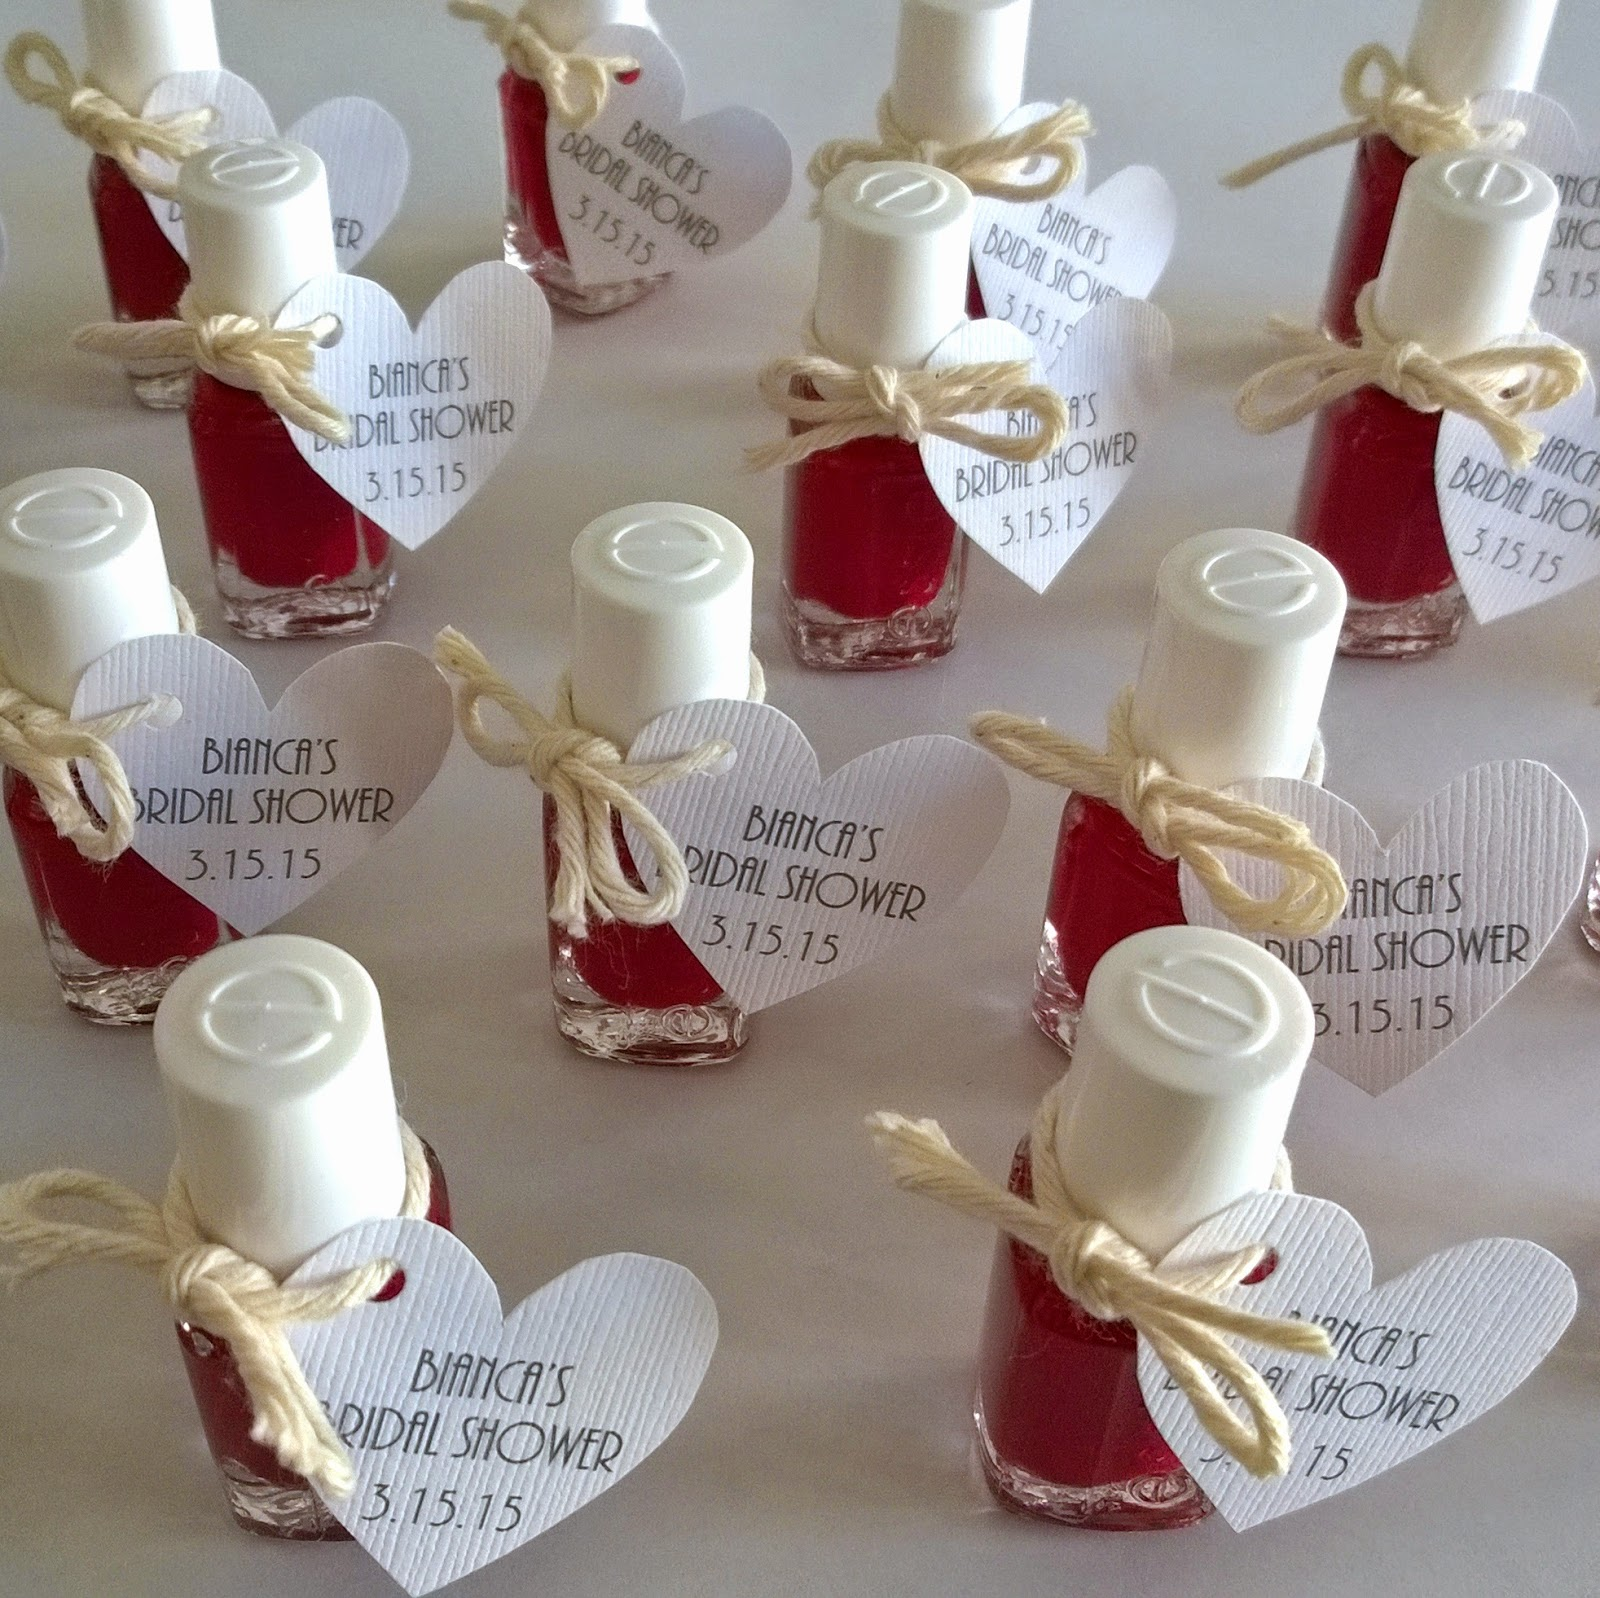 dress to kilt essie nail polish favors